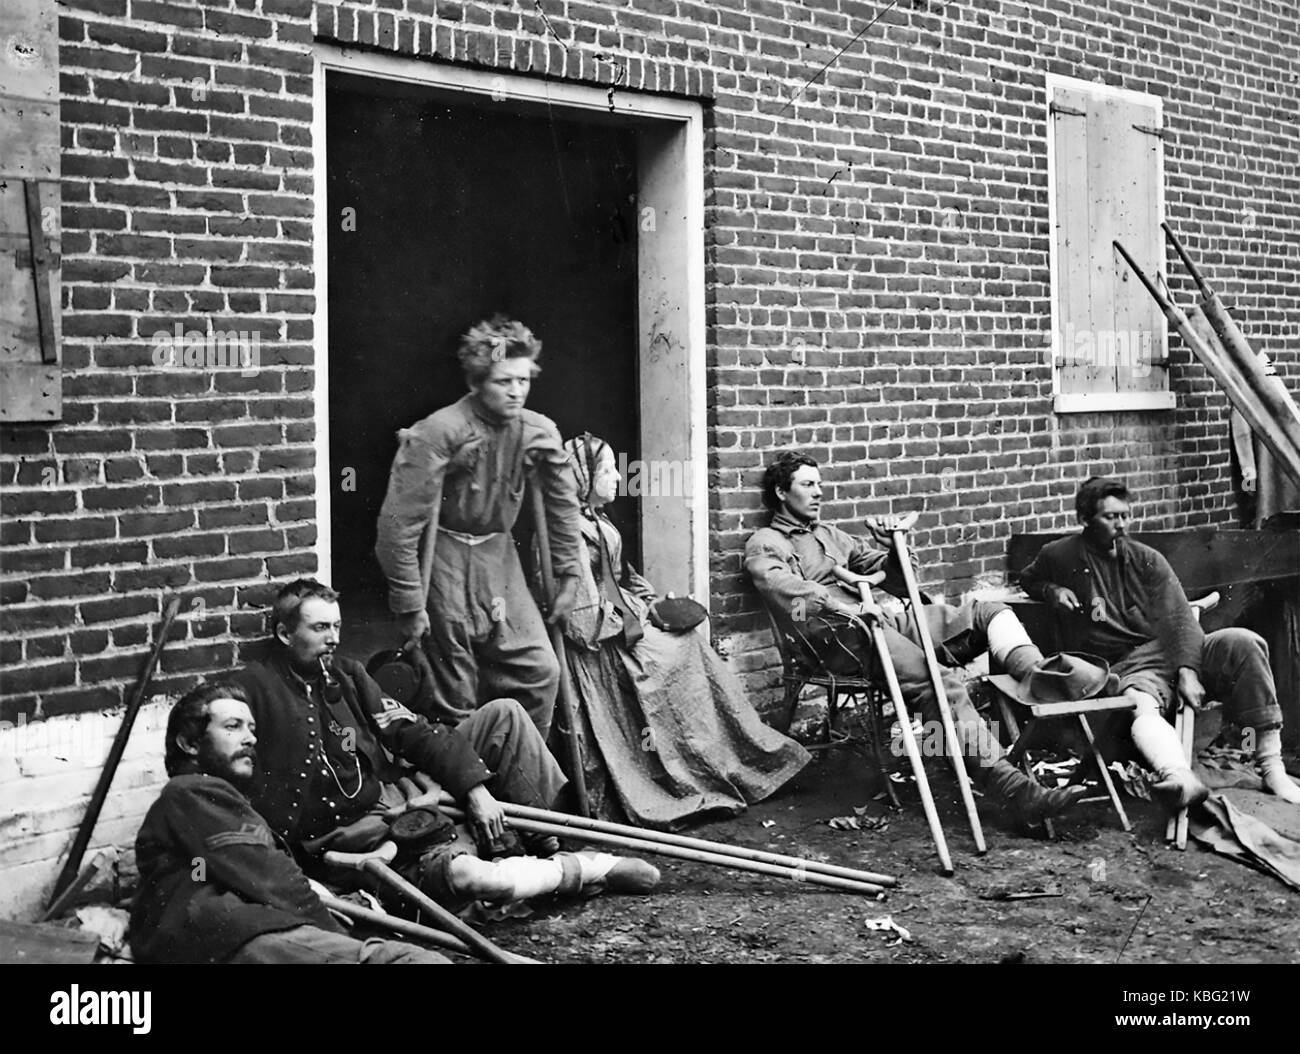 BATTLE OF FREDERICKSBURG 11-15 December 1862. Wounded Union soldiers at a temporary hospital. - Stock Image